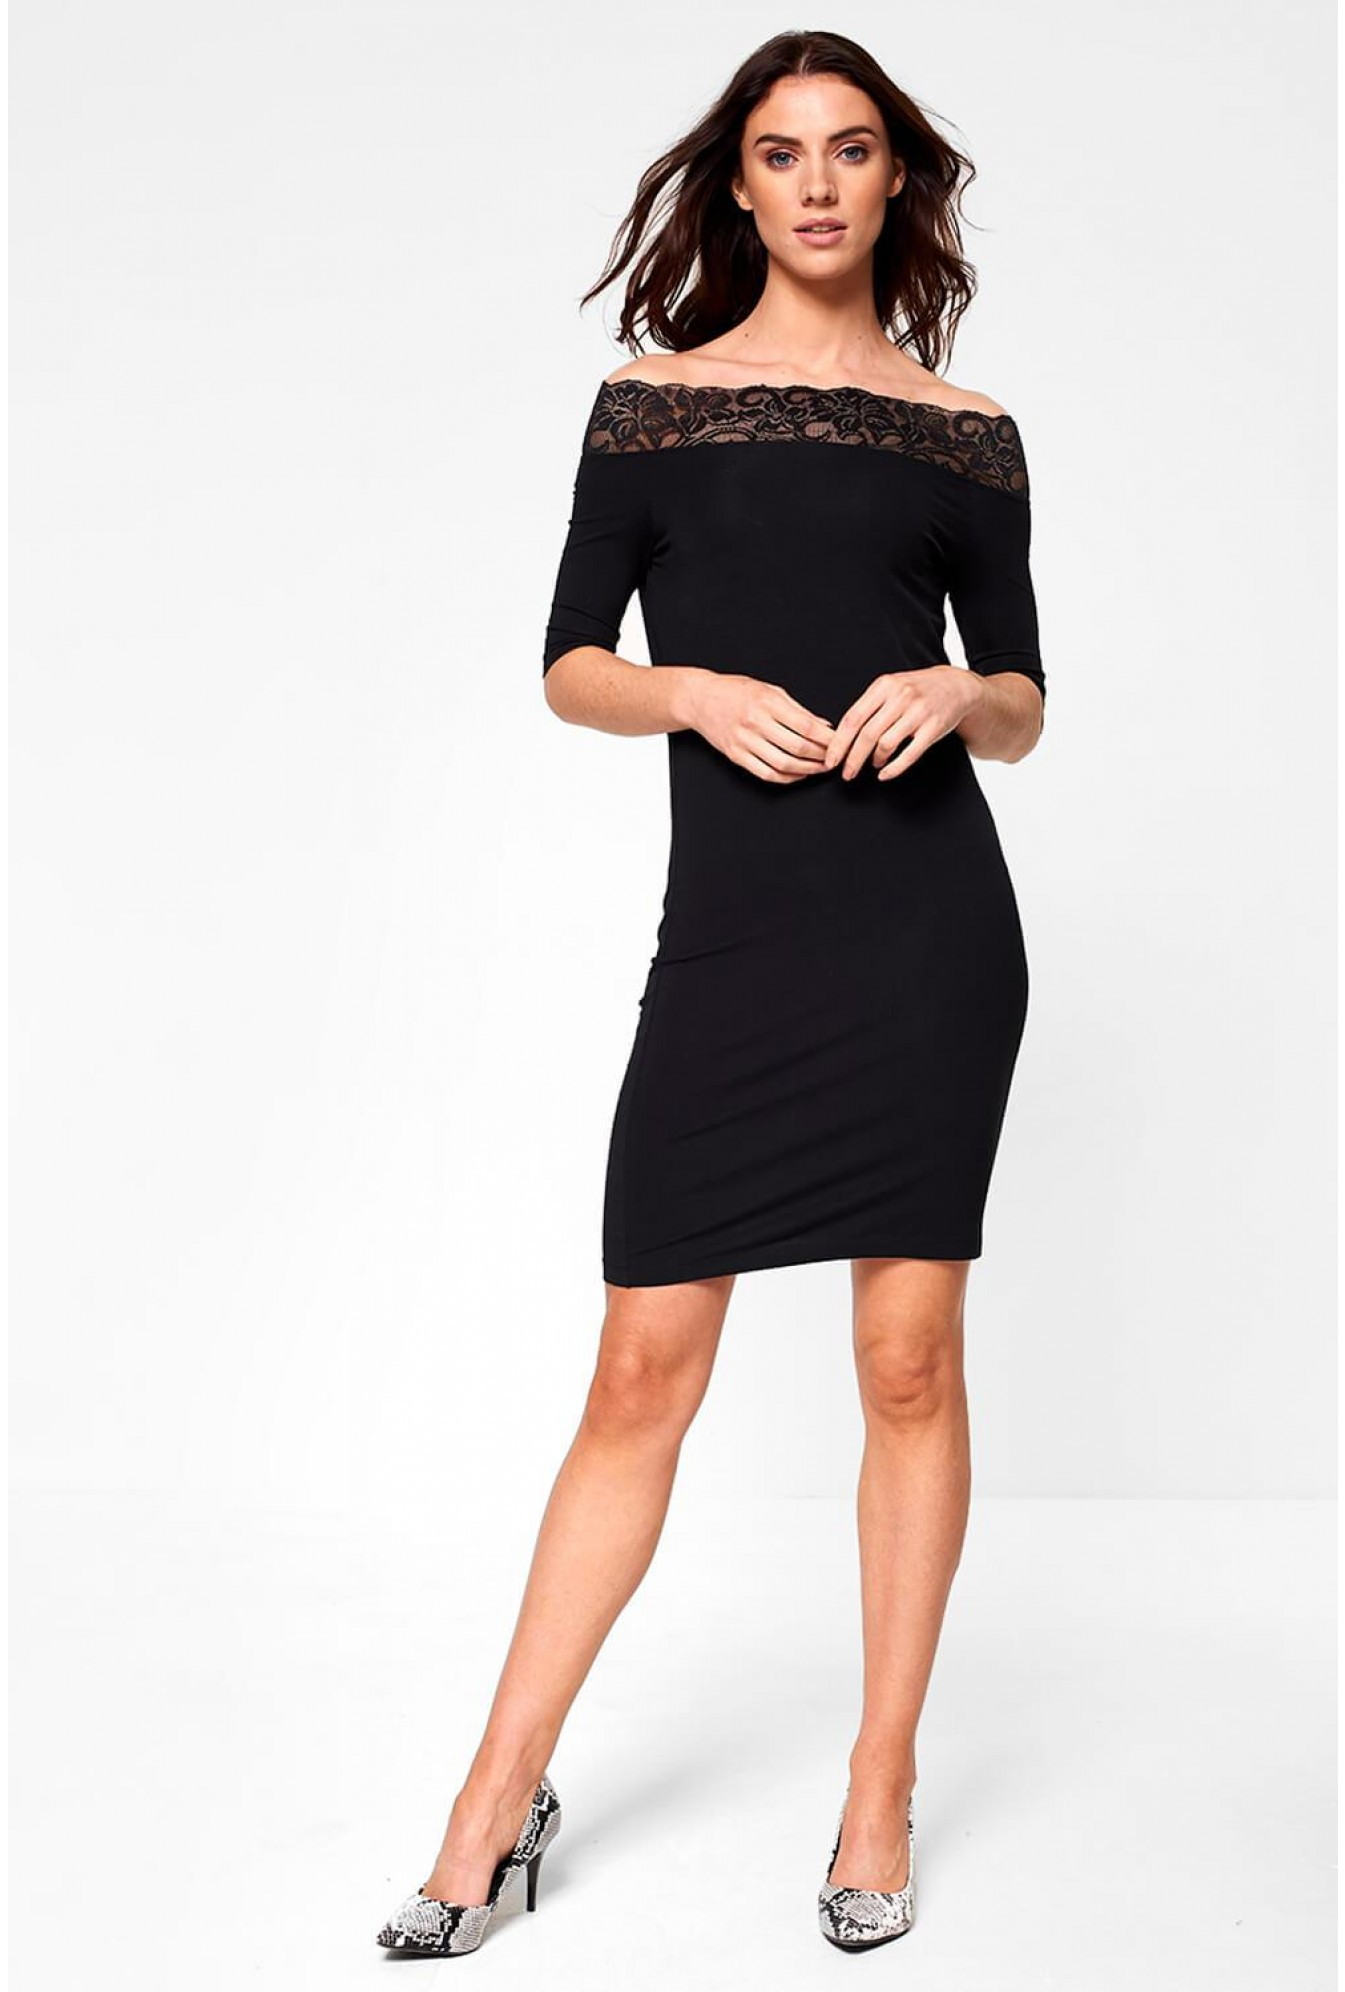 b0ba2daefac2 Noisy May Lacy Off Shoulder Short Dress with Lace Insert in Black ...